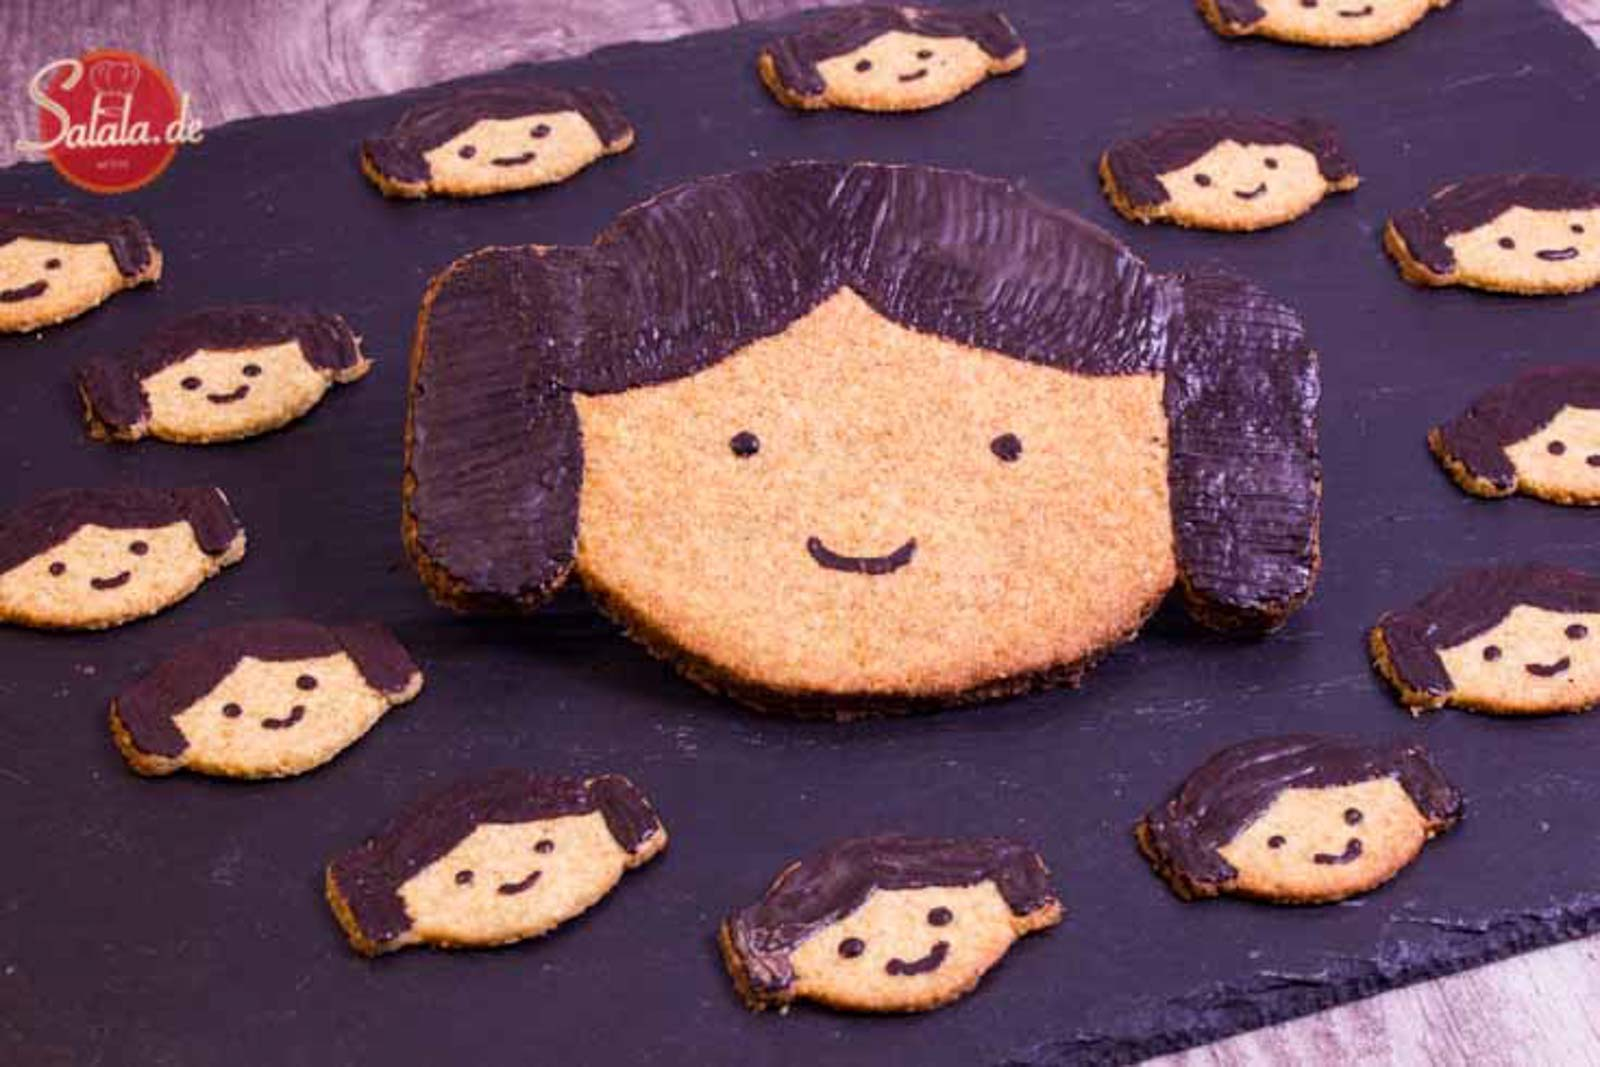 Leia Cookies – May the force be with you